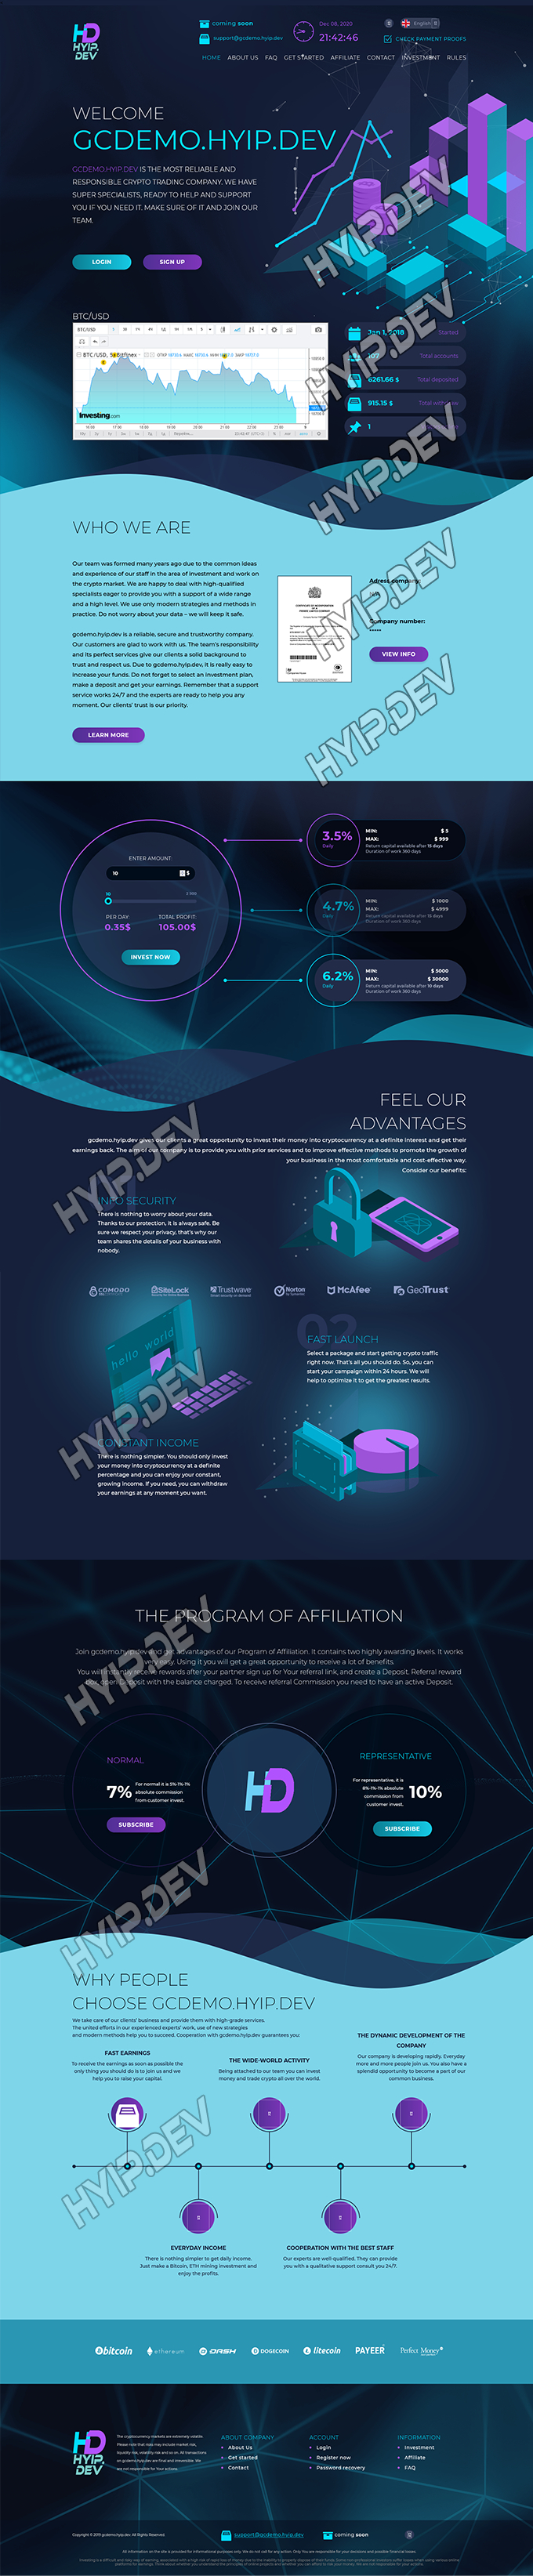 goldcoders hyip template no. 185, home page screenshot